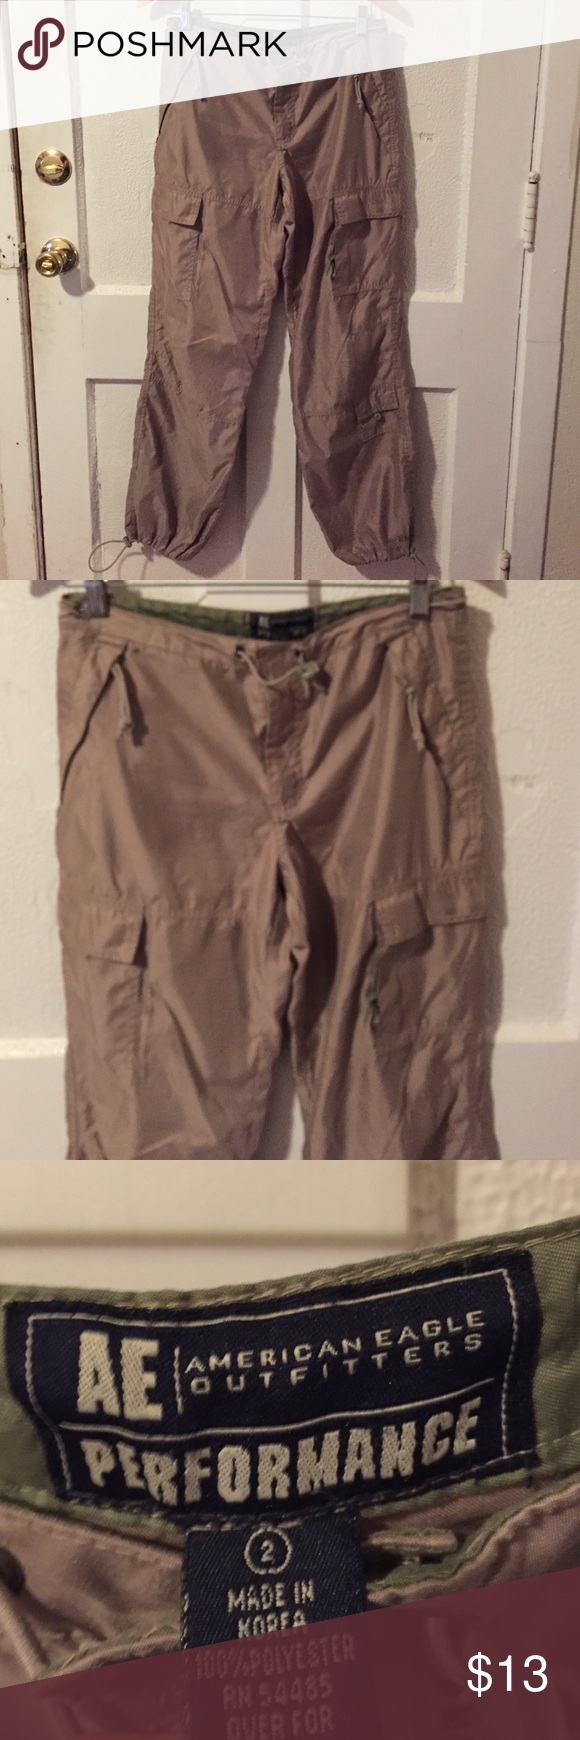 American Eagle Khaki Cargo Pants size 2 Excellent condition khaki cargo pants size 2. No defects. If you're worried about fit, feel free to ask for measurements, but please don't leave me neutral/ negative feedback if the item doesn't fit! :) American Eagle Outfitters Pants